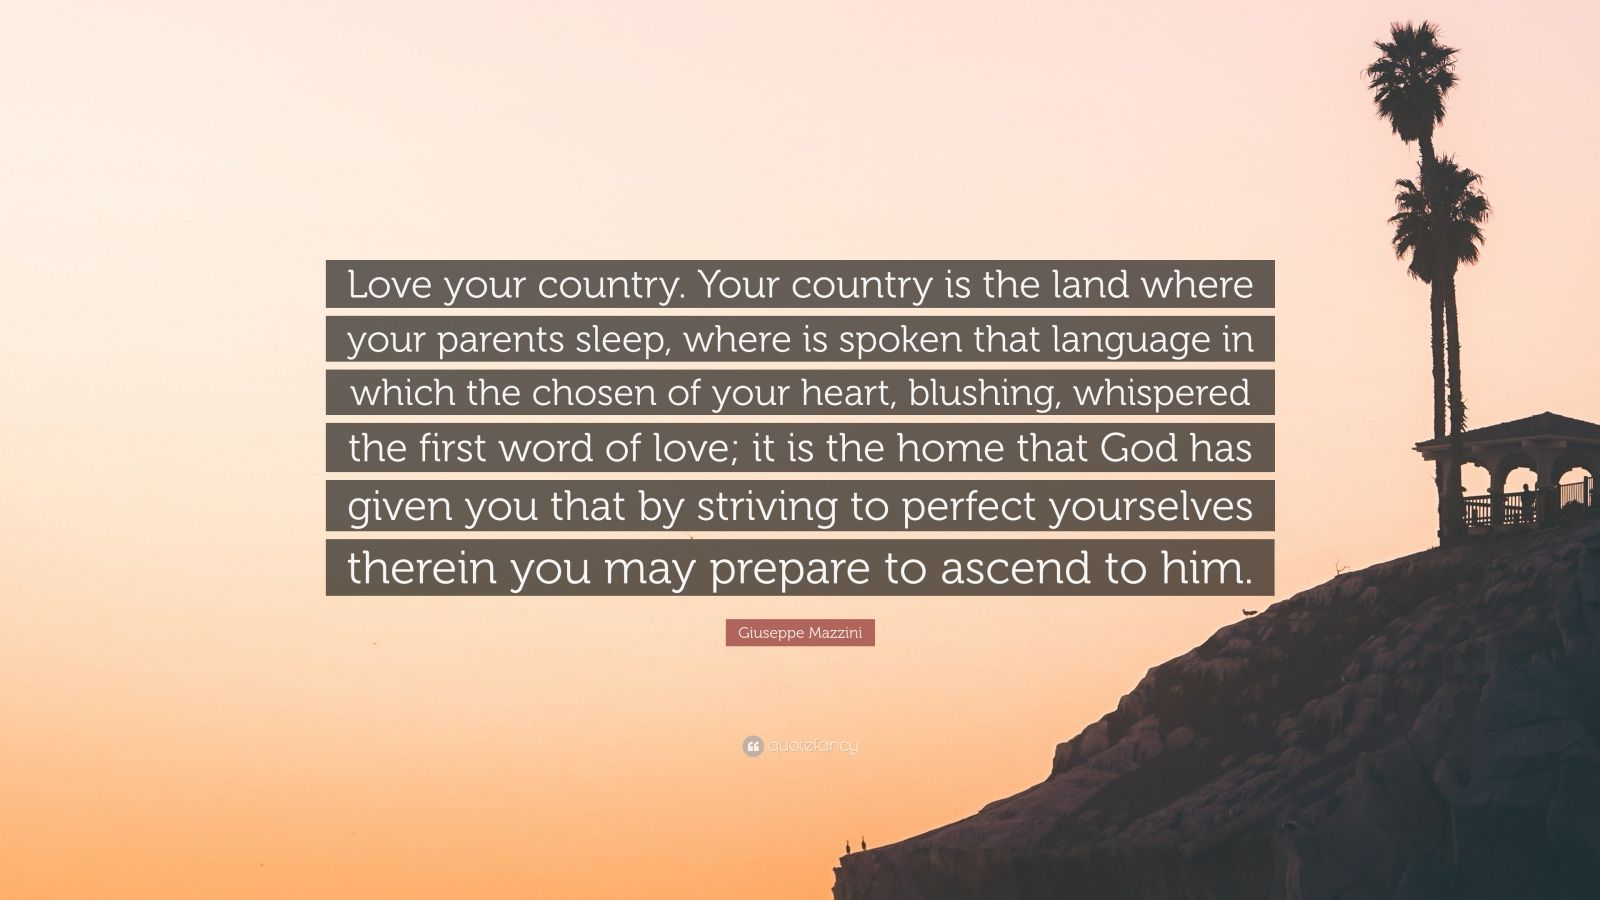 essay about love for your country Descriptive essay: my beloved country my country, the united states of america, or 'the land of the free' as i like to call it, has come a long way since 1607 significant events like the american revolution, declaration of independence and the issue of slavery have shaped my country into what it is today – a land for everyone.